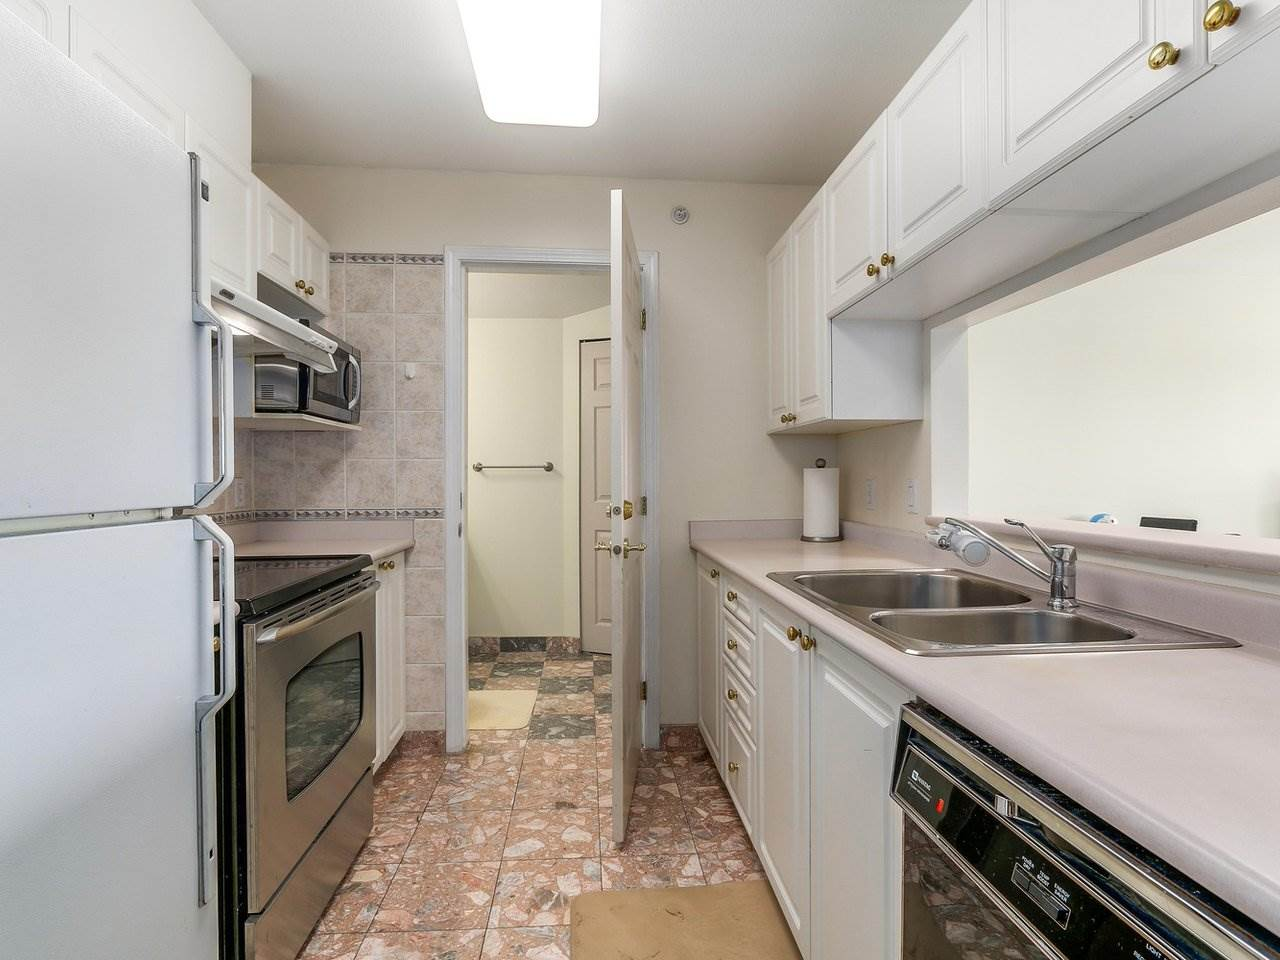 Condo Apartment at 405 2965 HORLEY STREET, Unit 405, Vancouver East, British Columbia. Image 8